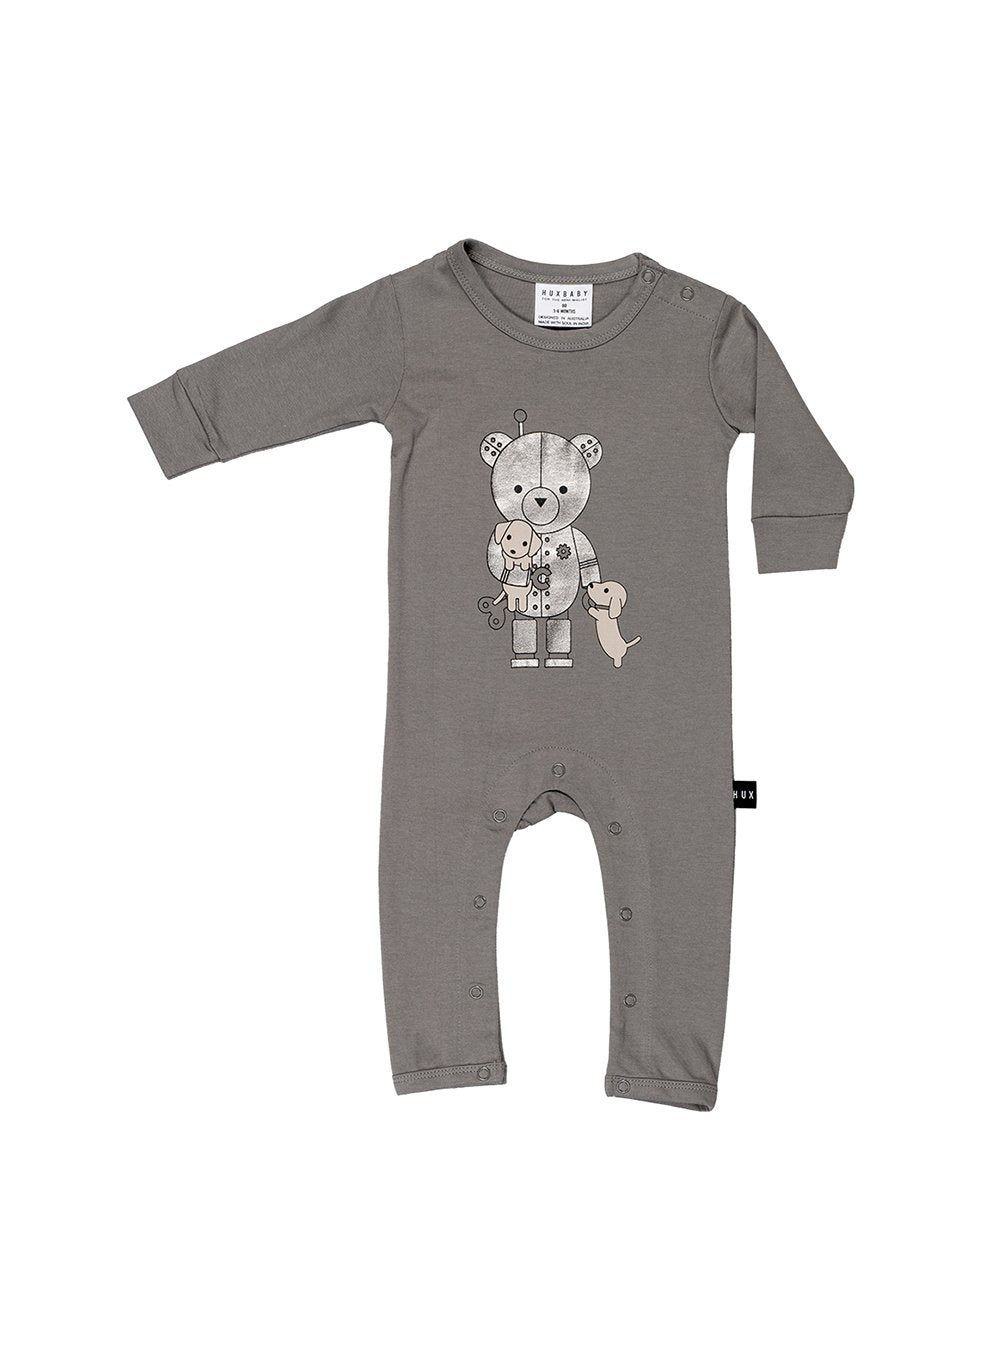 Huxbaby Robo Puppy Romper Stone-Romper-HUXBABY- babies, kids and moms fashion, decor and accessories at Modern Kids Society USA